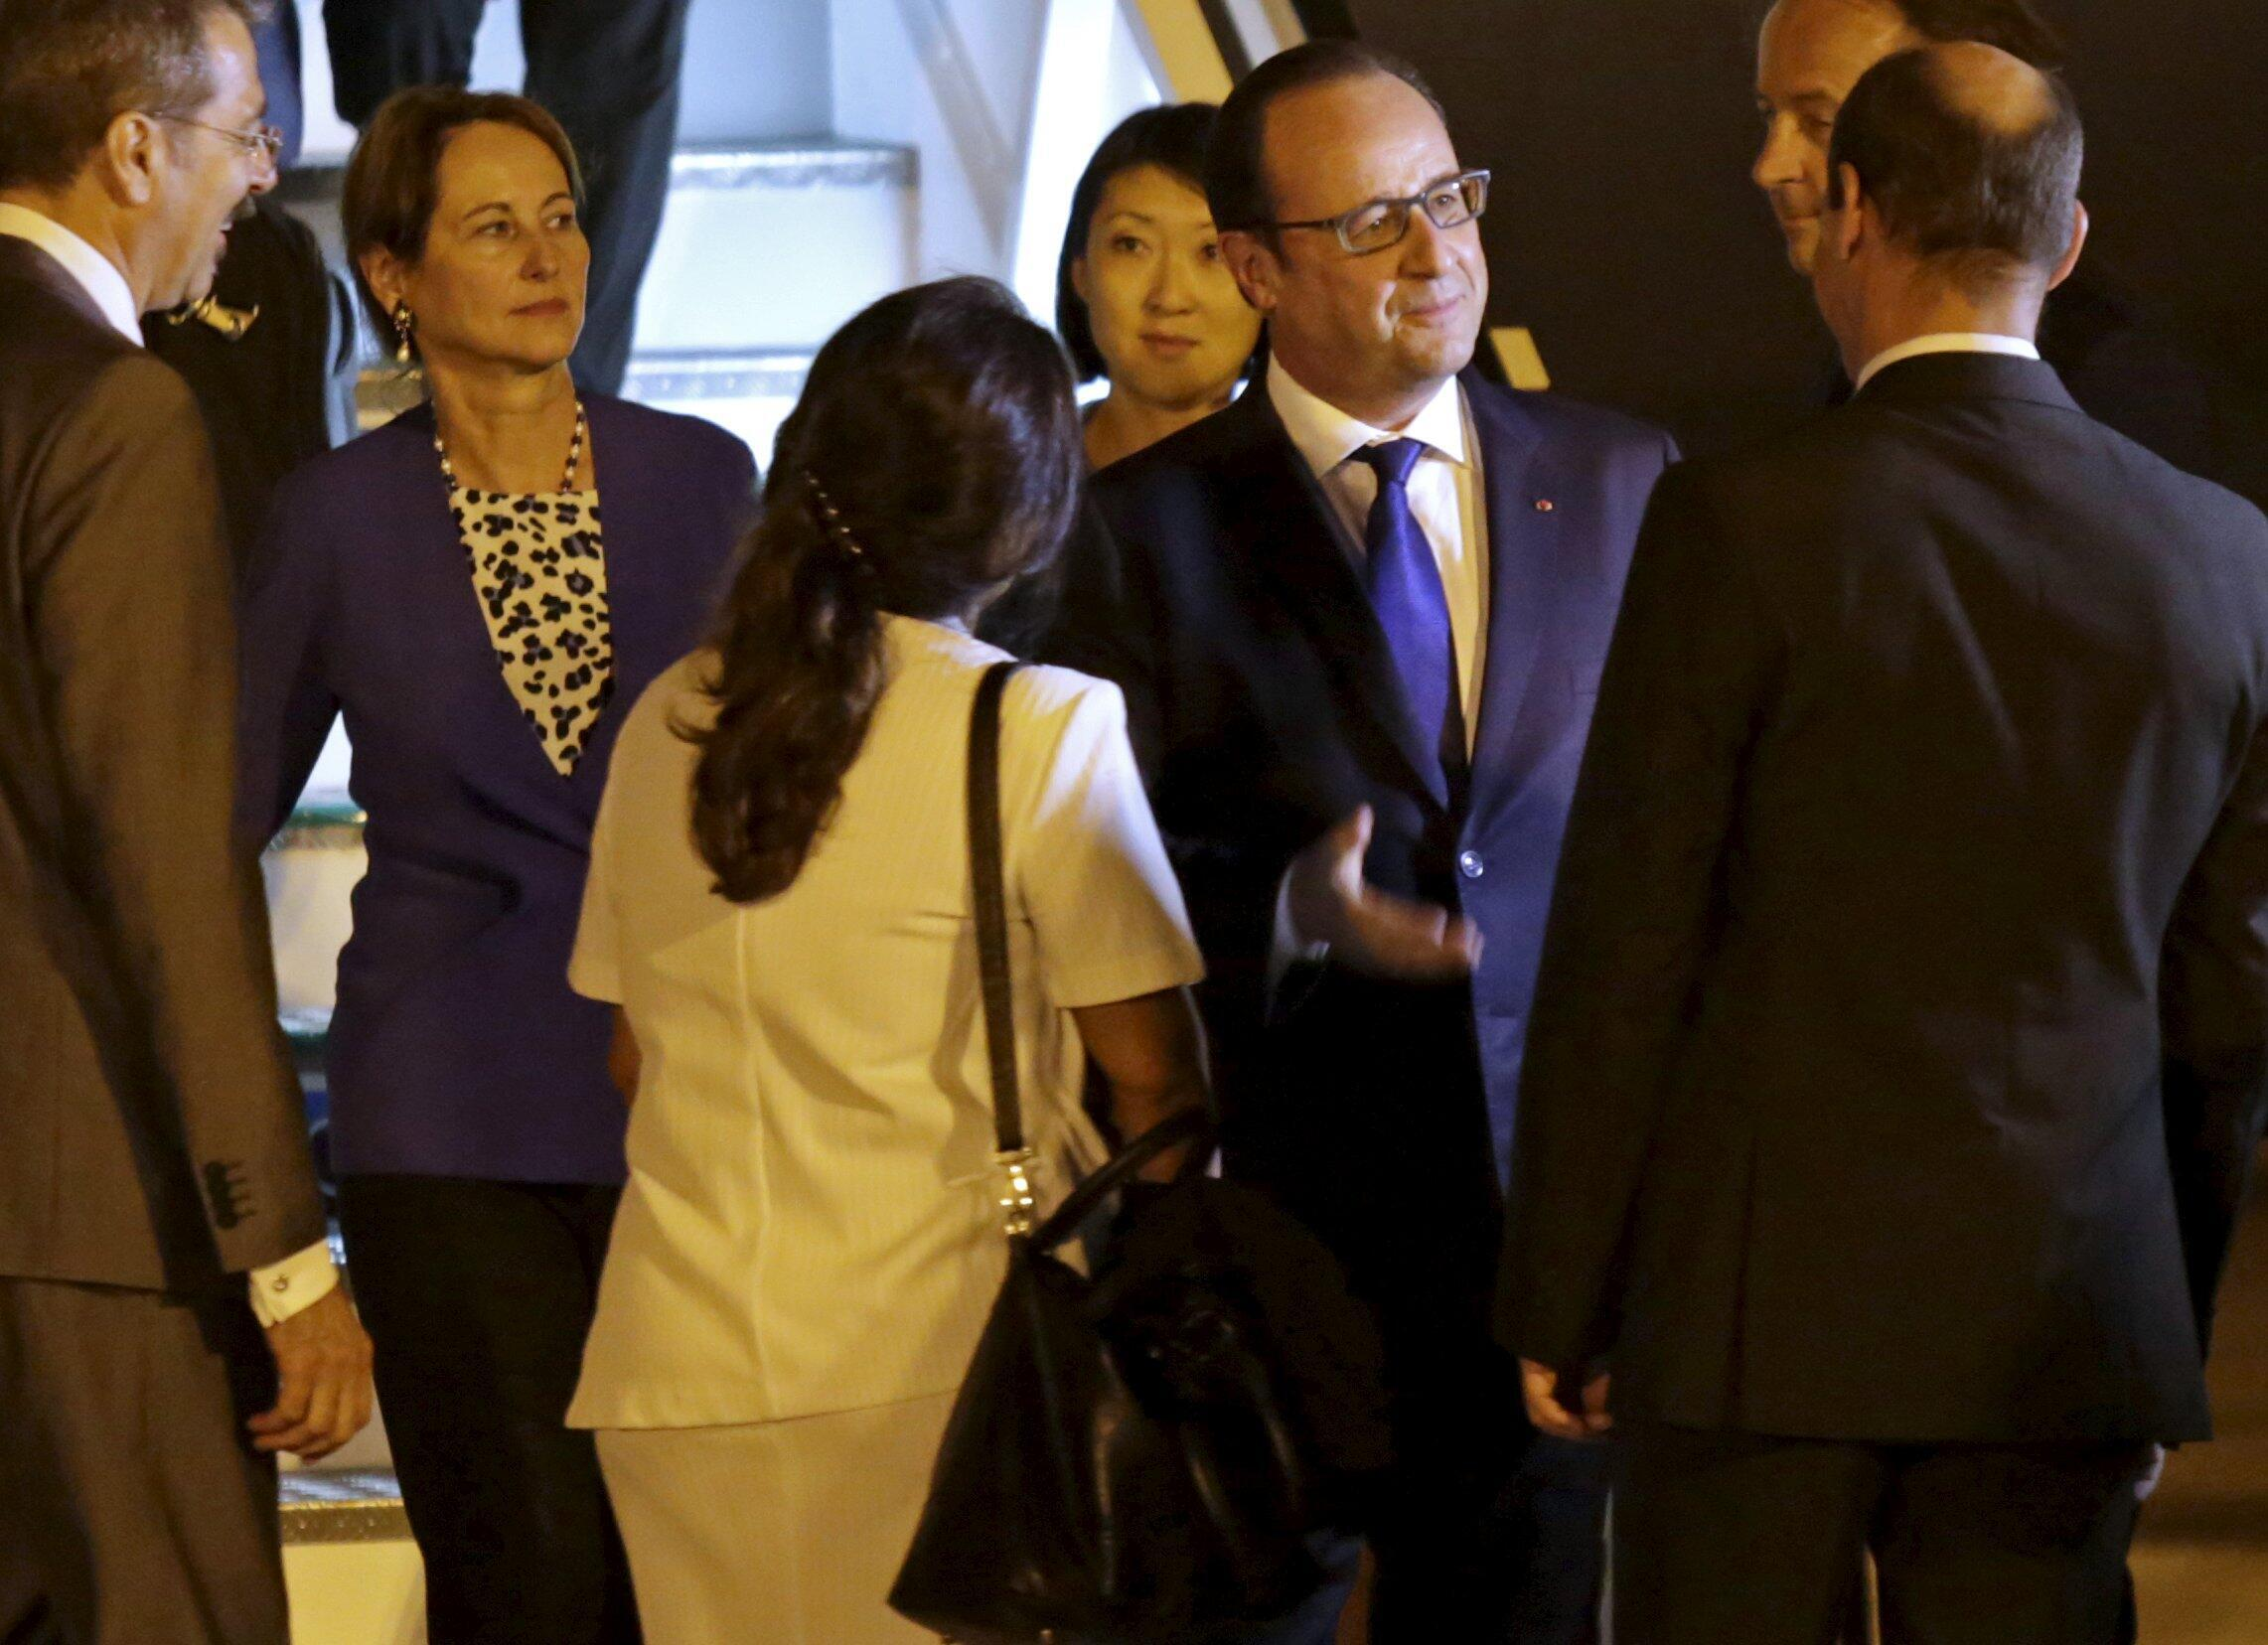 French President Francois Hollande at Havana's airport, 11 May 2015.